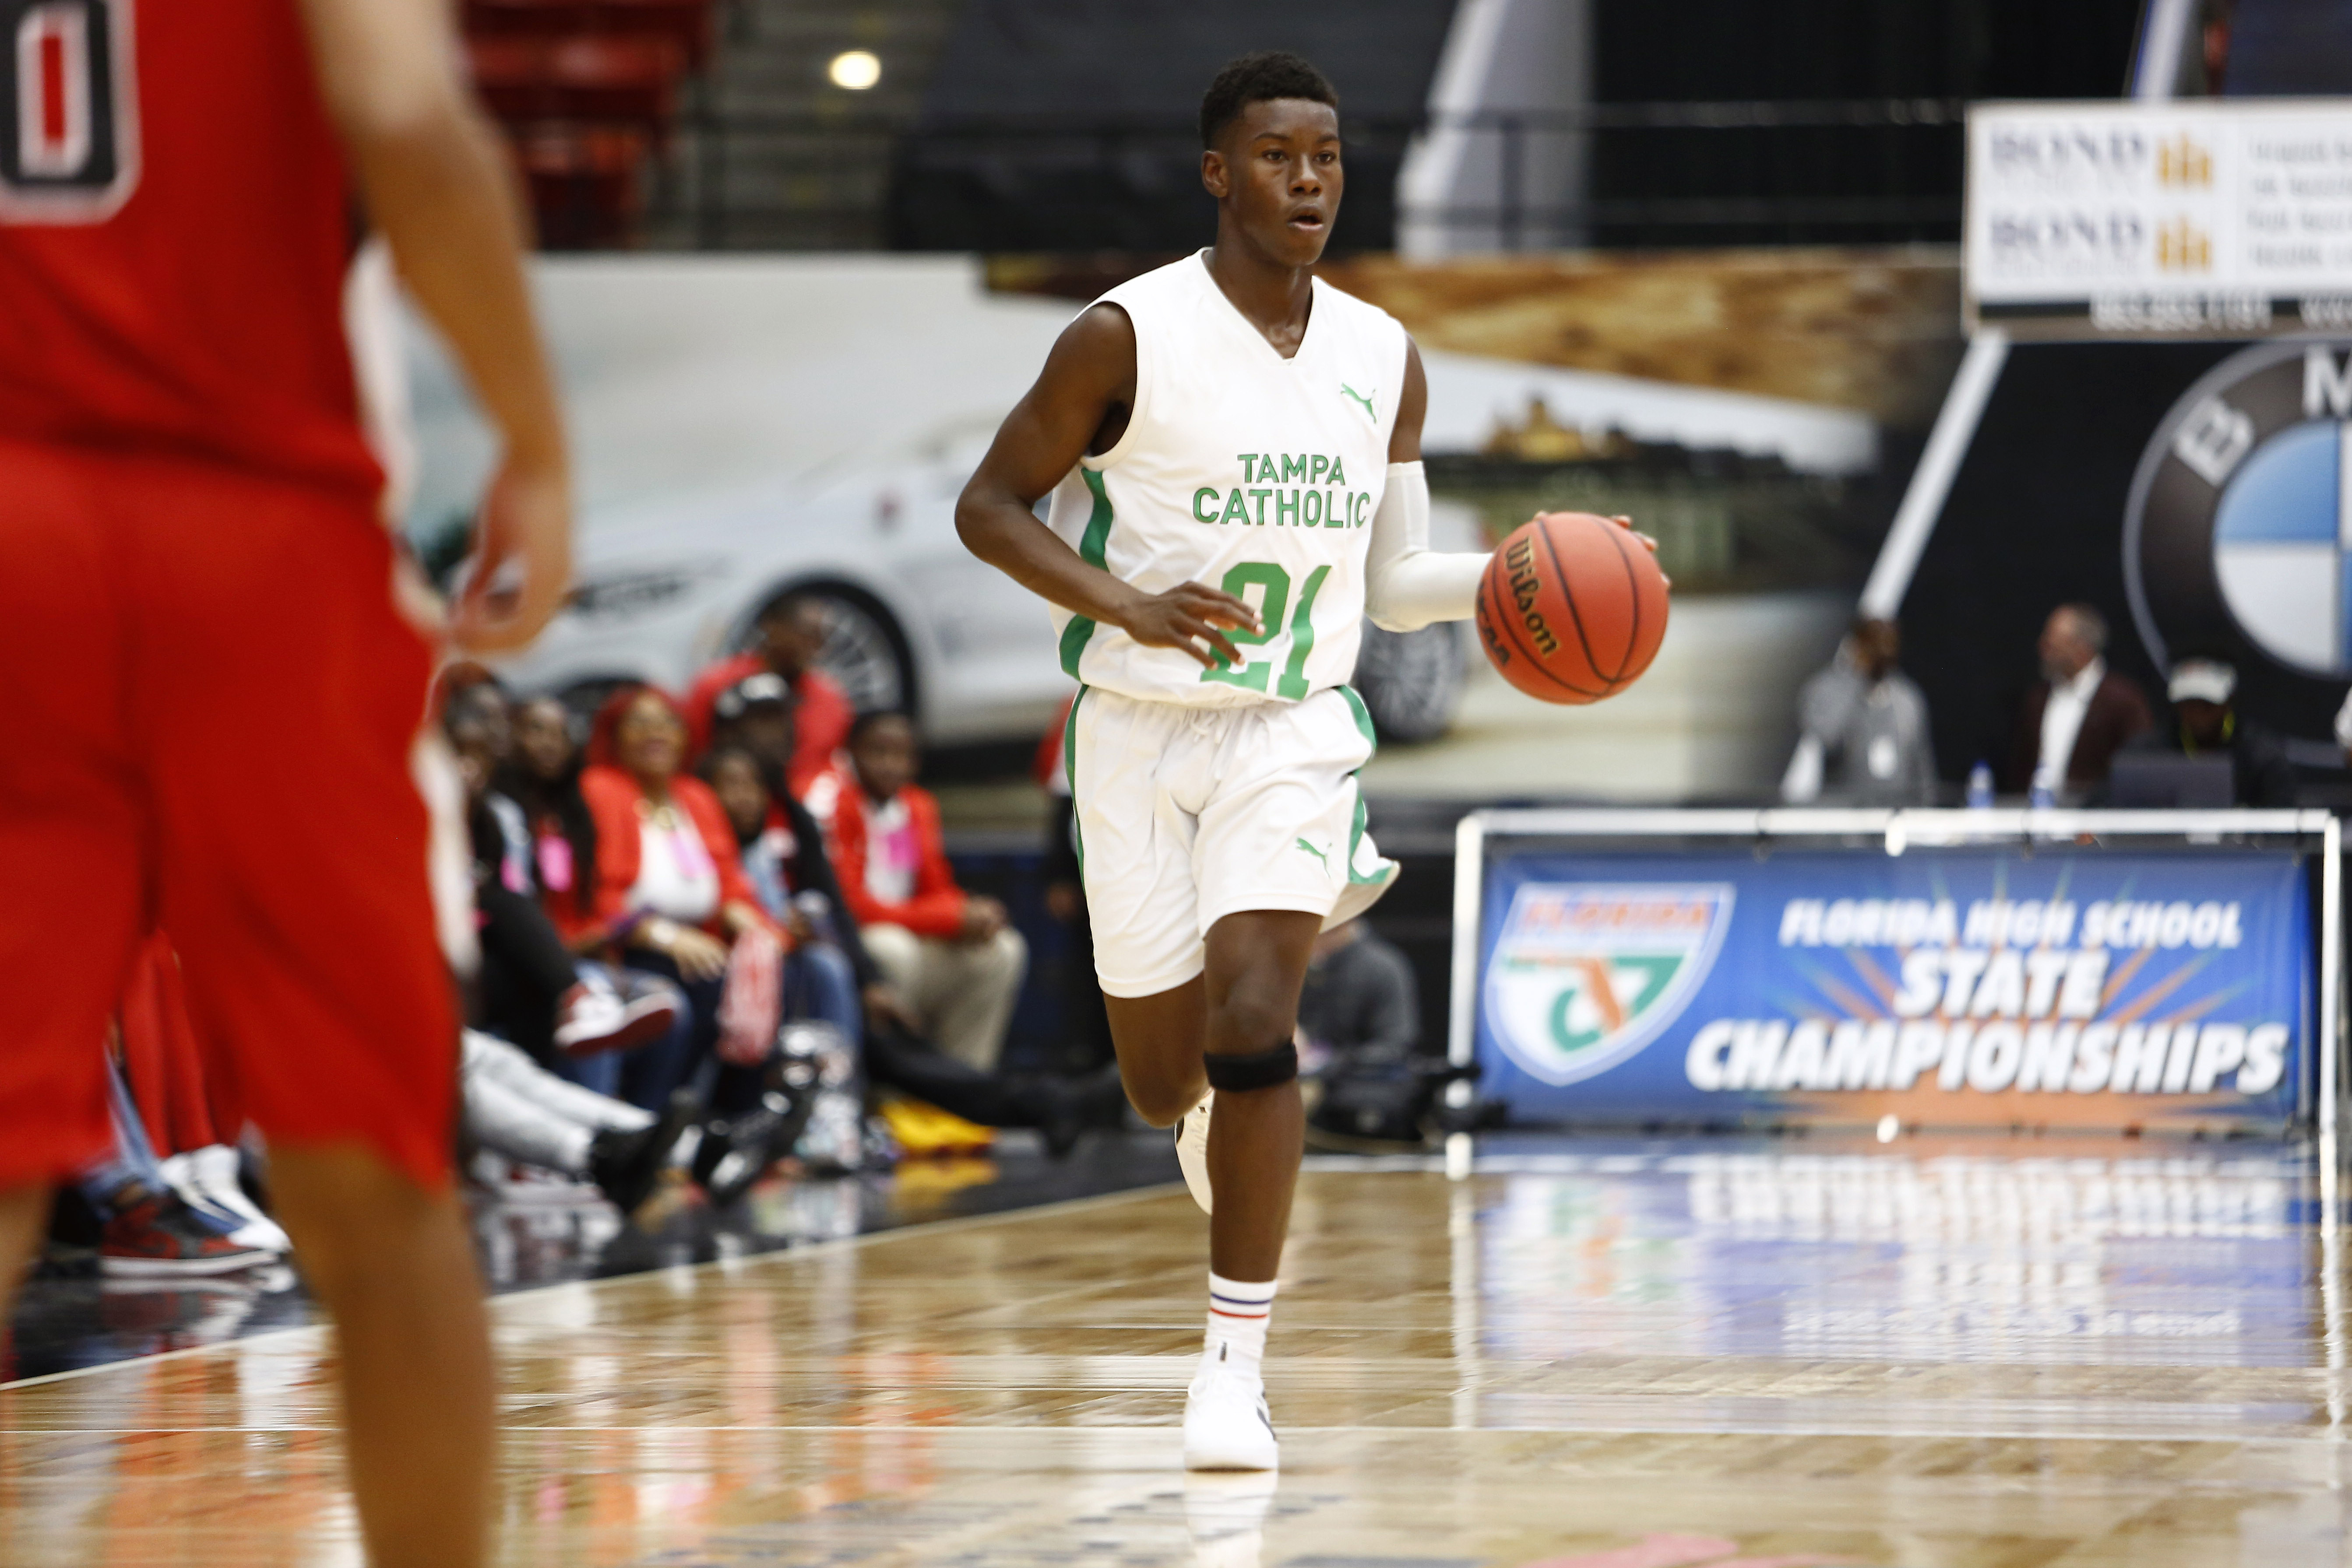 High School Boys Basketball Rankings For Tampa Bay